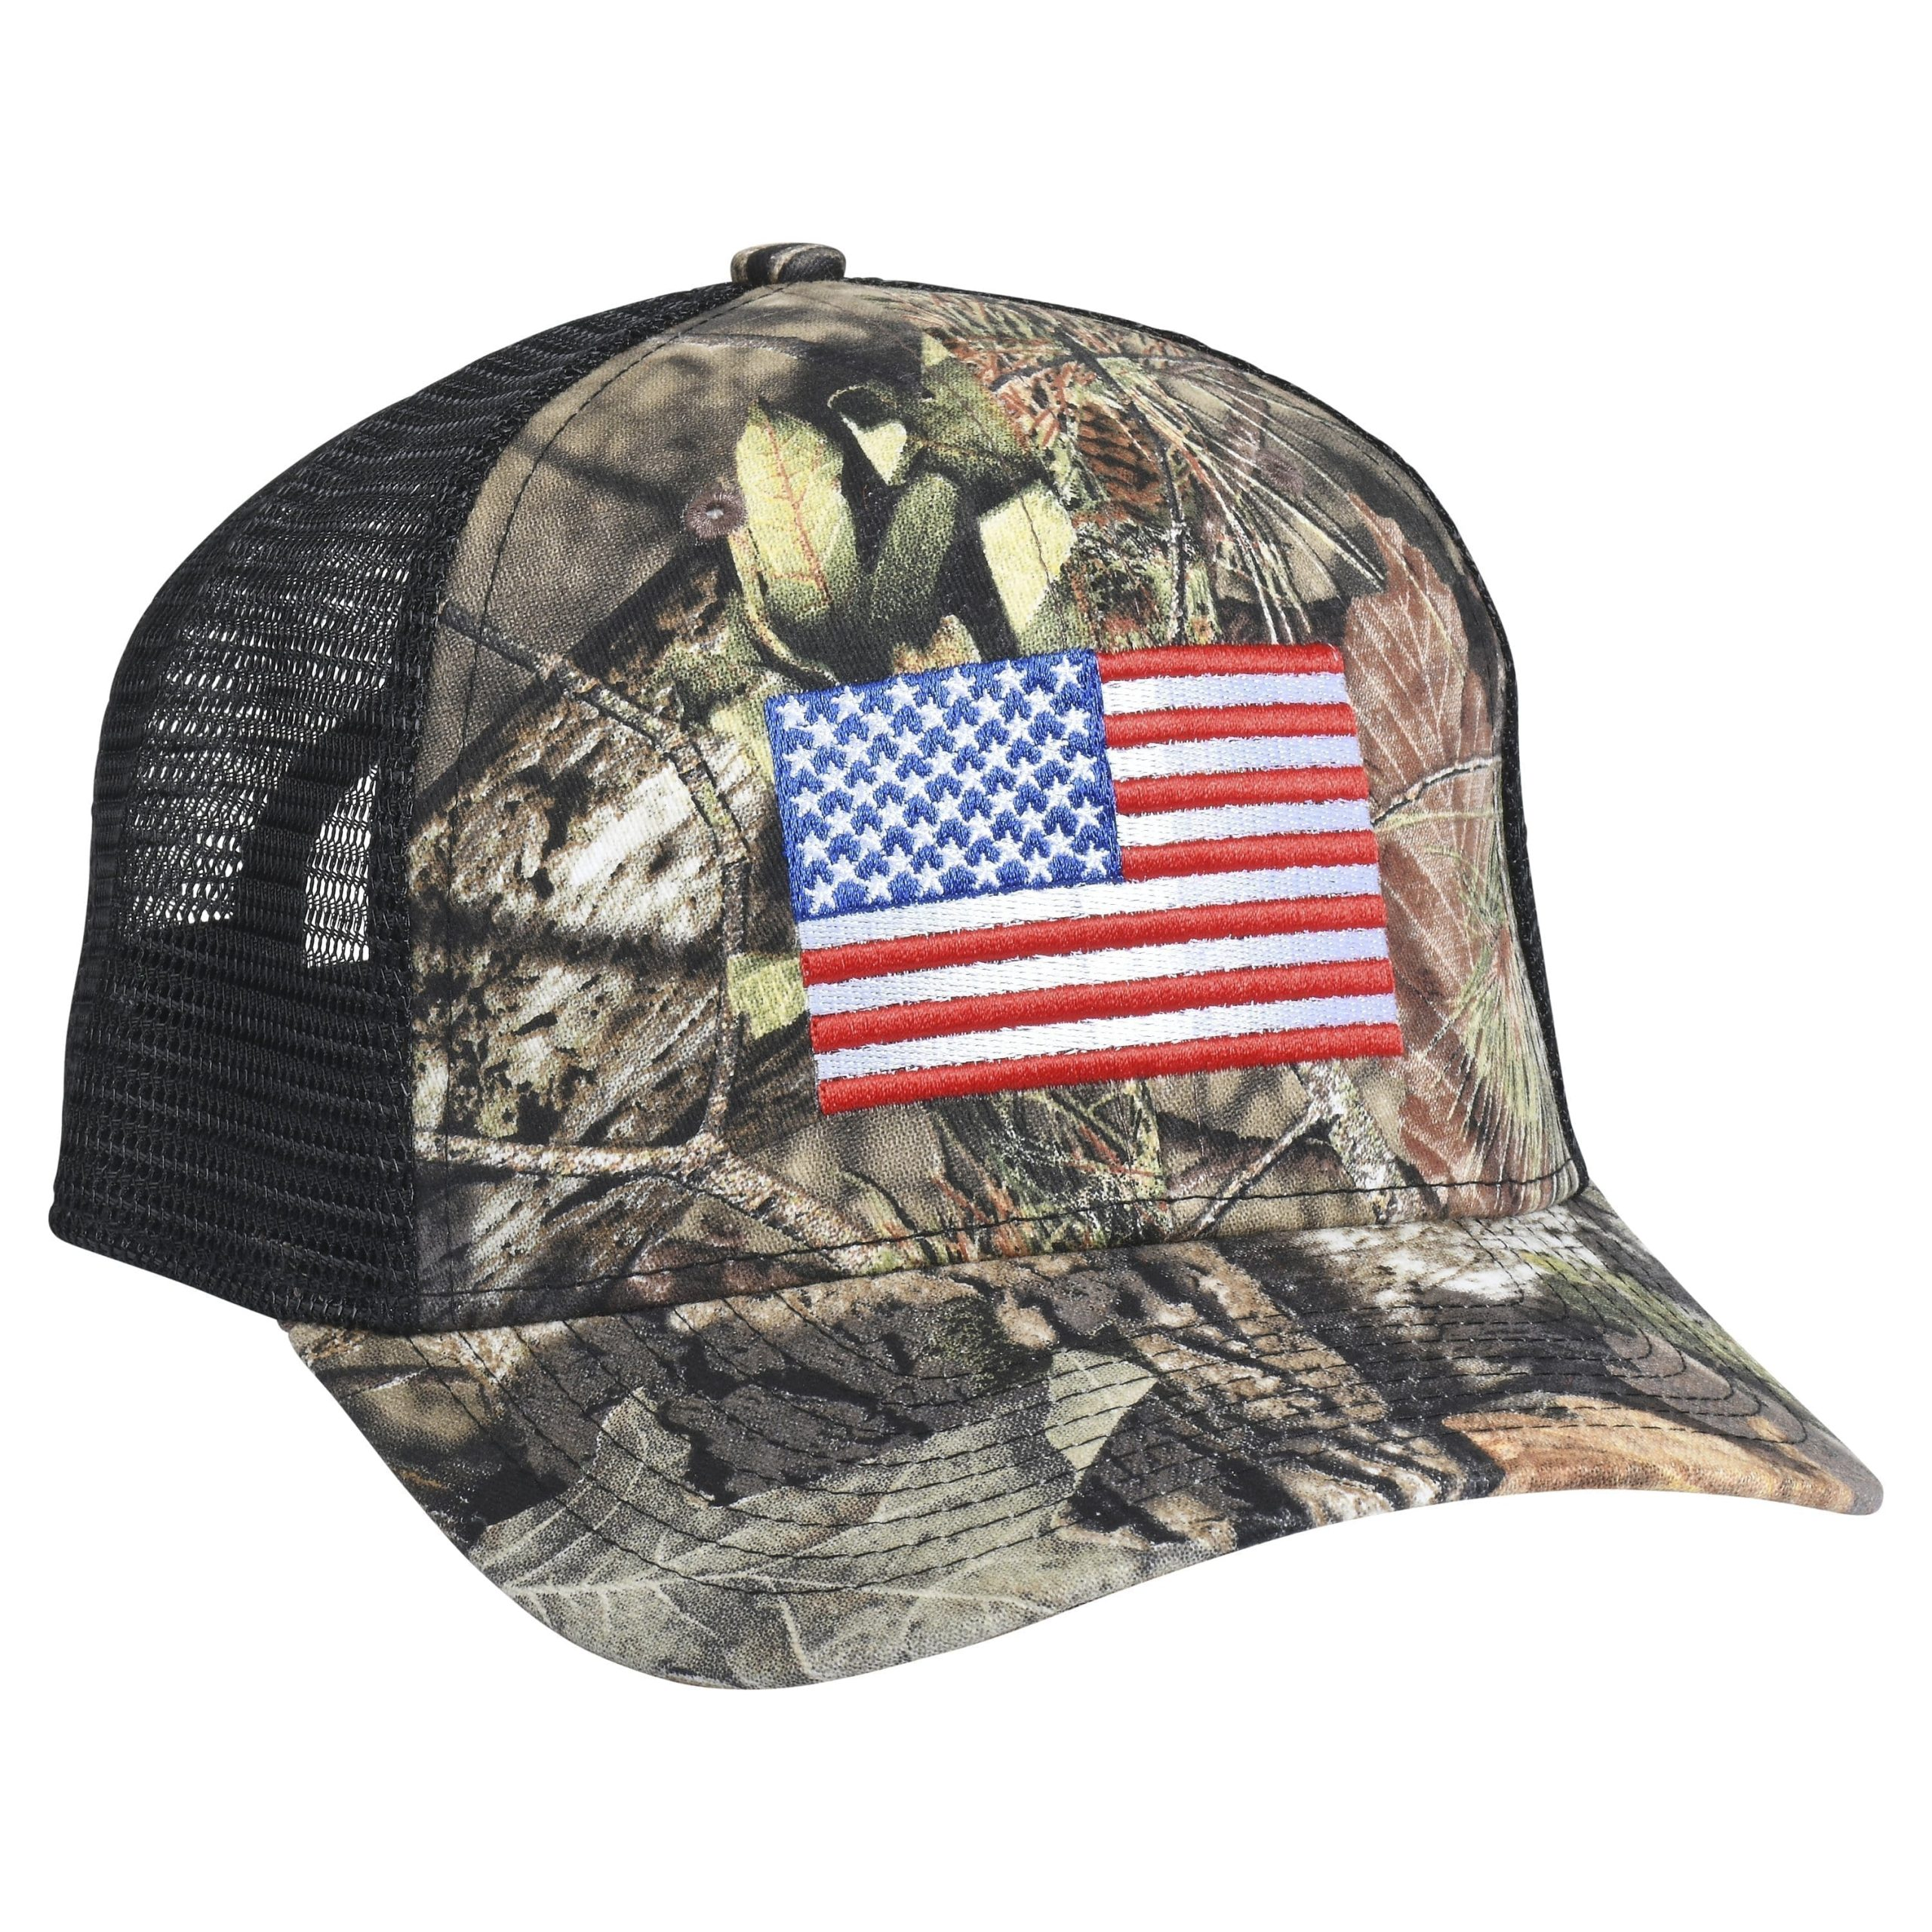 Mossy Oak Classic Flag Embroidery Break Up Country/Black Mesh